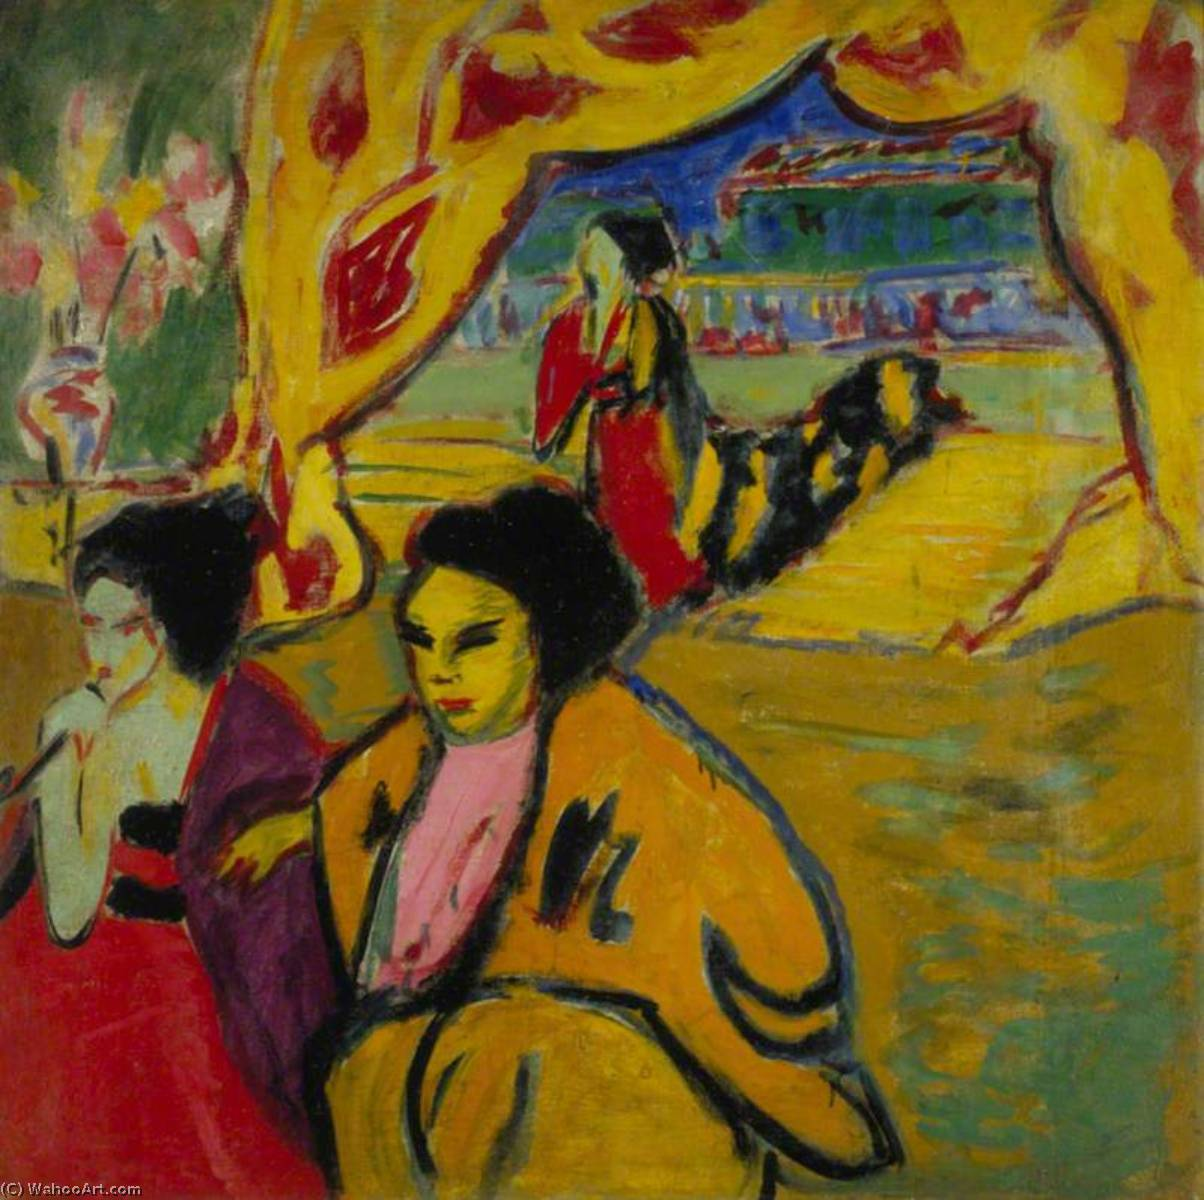 Japanisches Teatro ( Giapponese Teatro ), 1909 di Ernst Ludwig Kirchner (1880-1938, Germany) | WahooArt.com